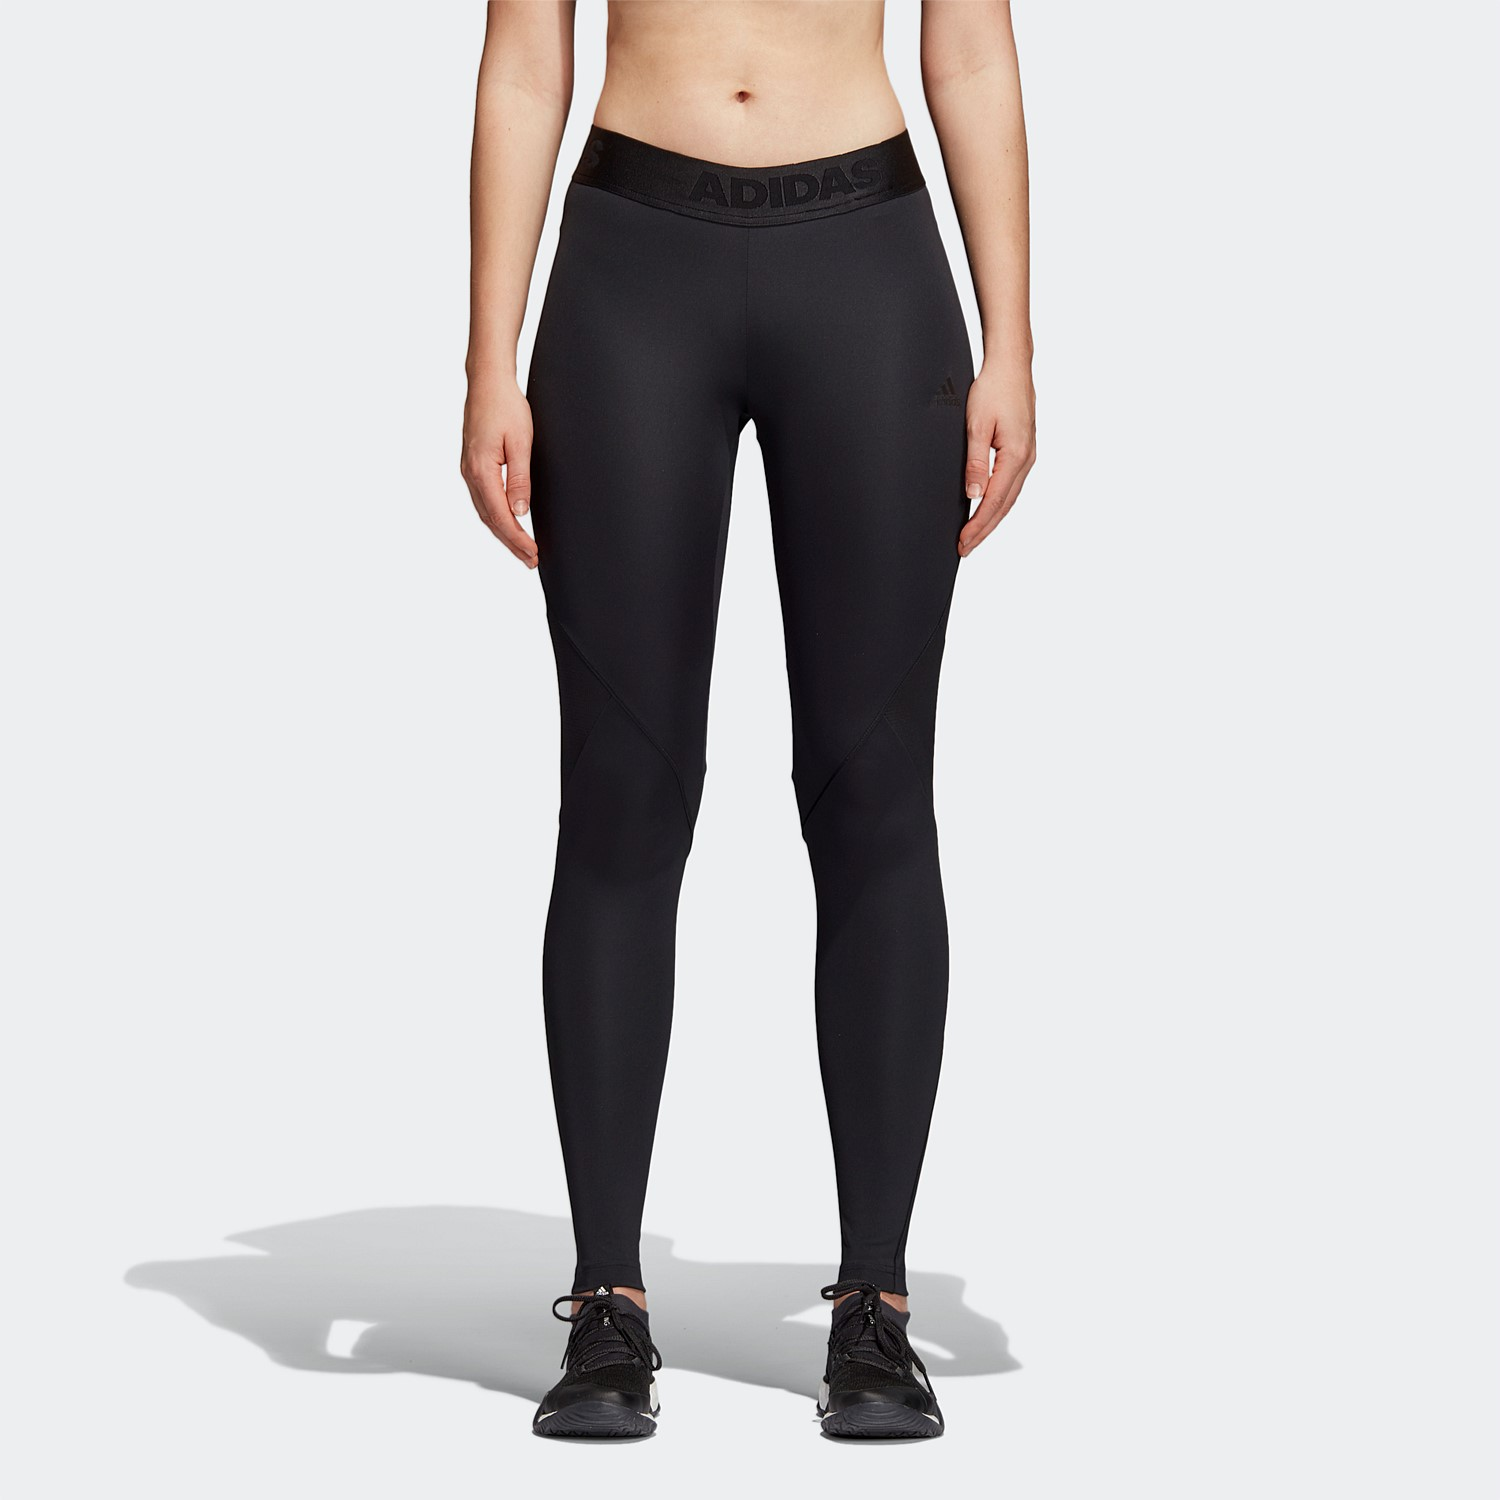 adidas legging nz